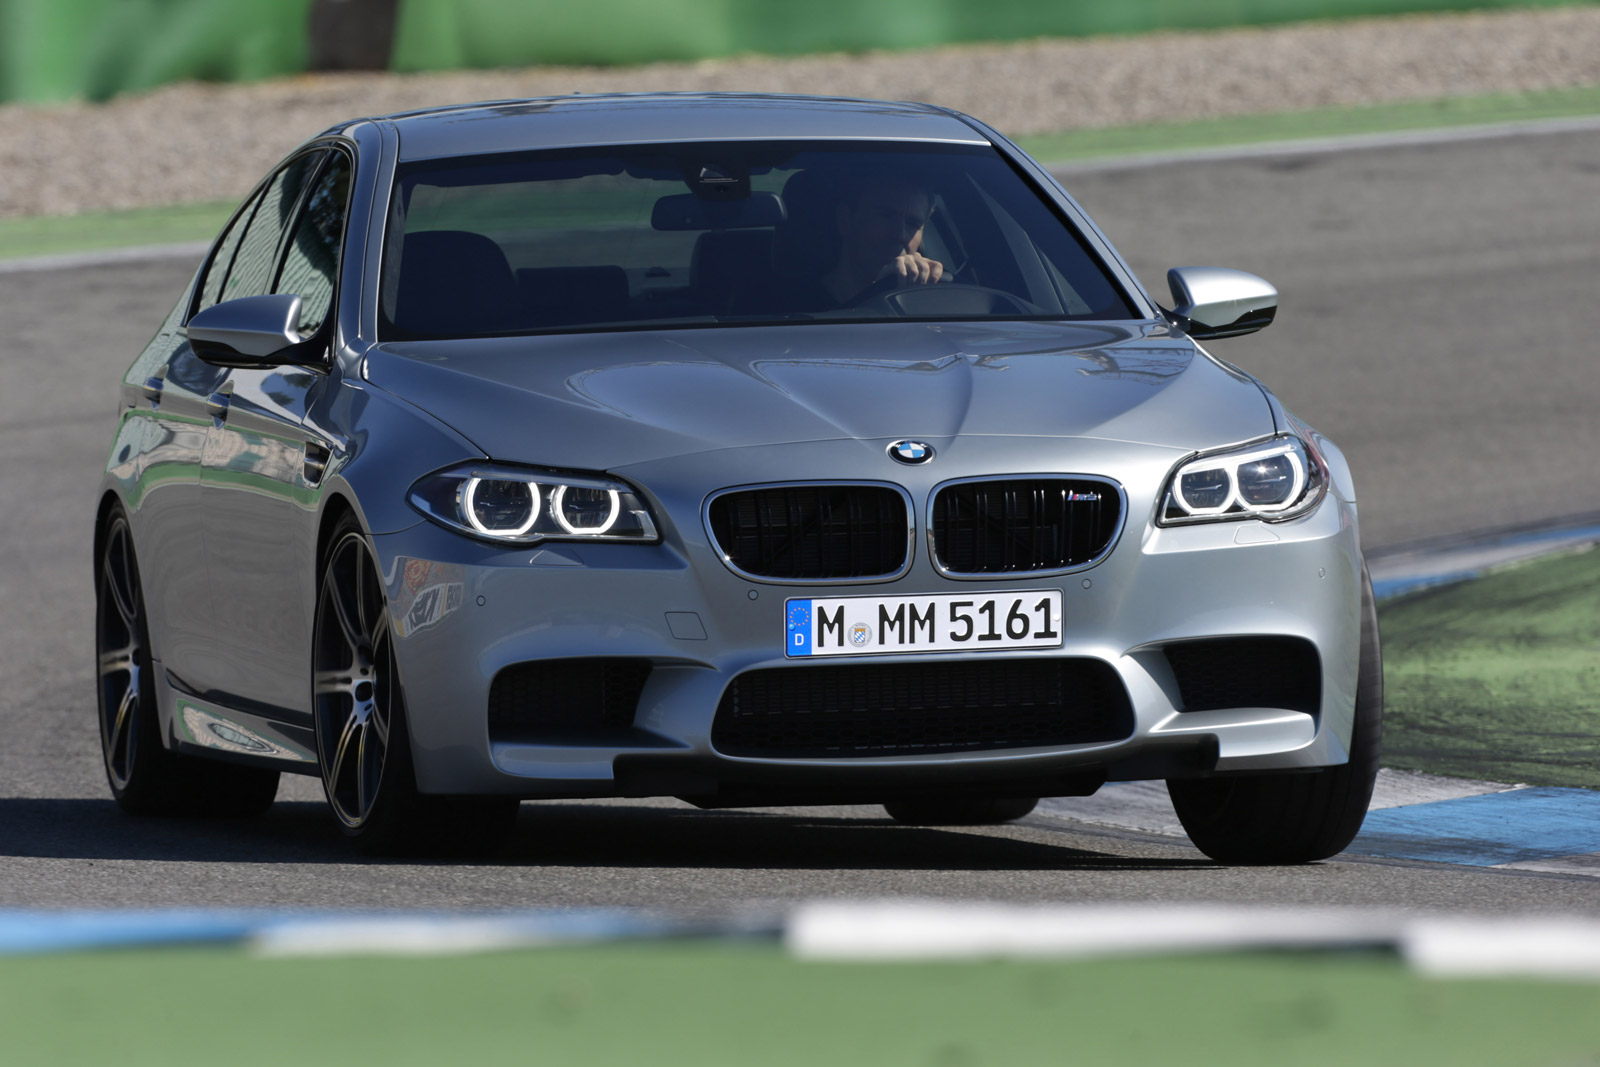 2014 bmw m5 debuts now offers 575 hp competition package rh motorauthority com 2014 bmw m5 rwd specs bmw m5 2014 engine specs